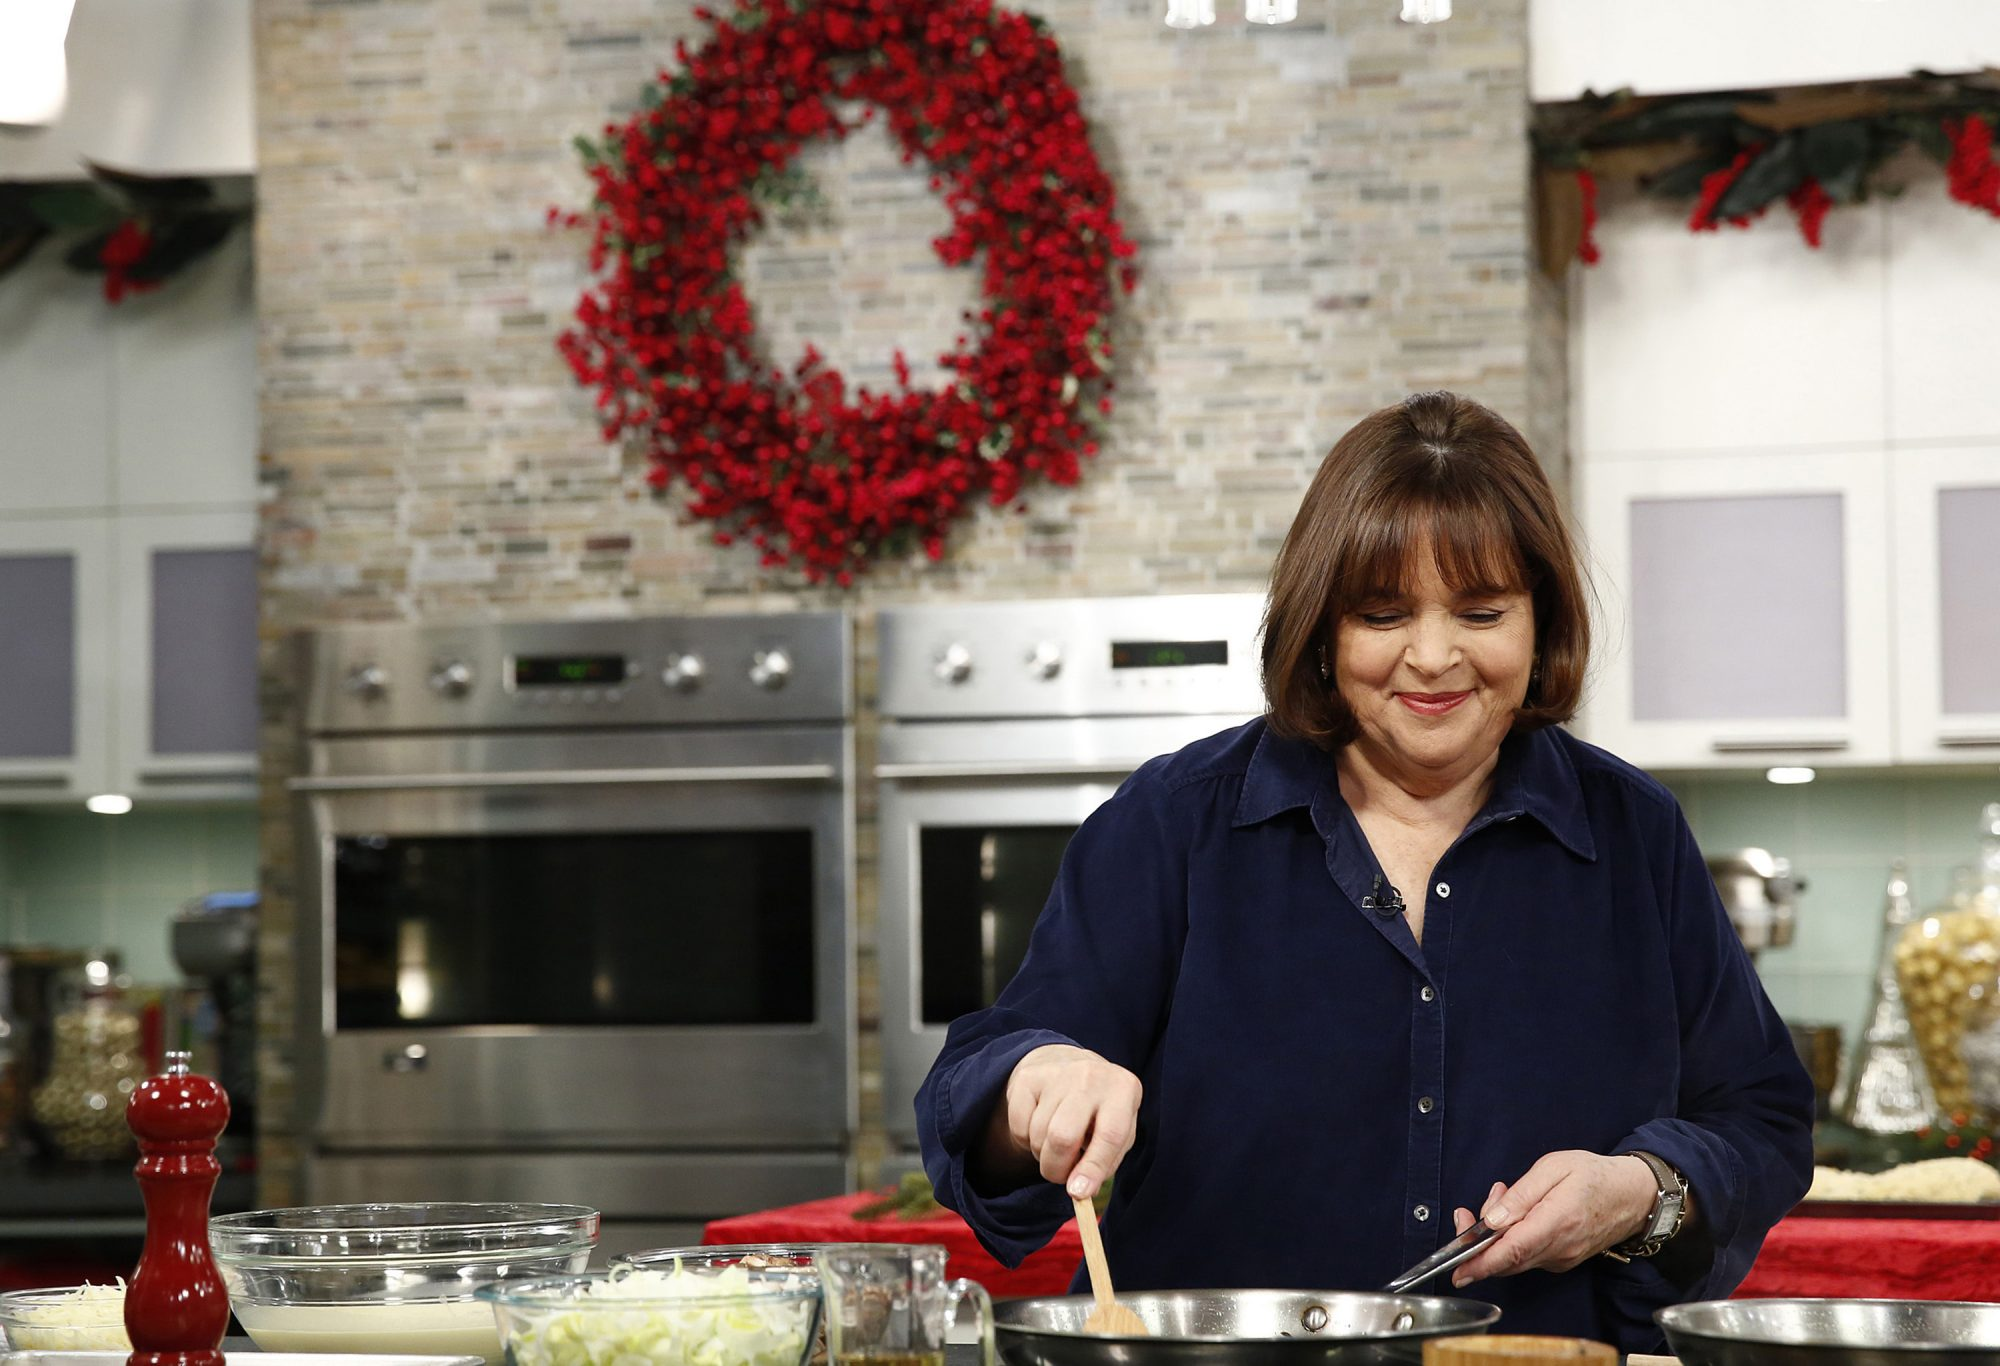 This Ina Garten Recipe May Have Inspired Prince Harry's Proposal